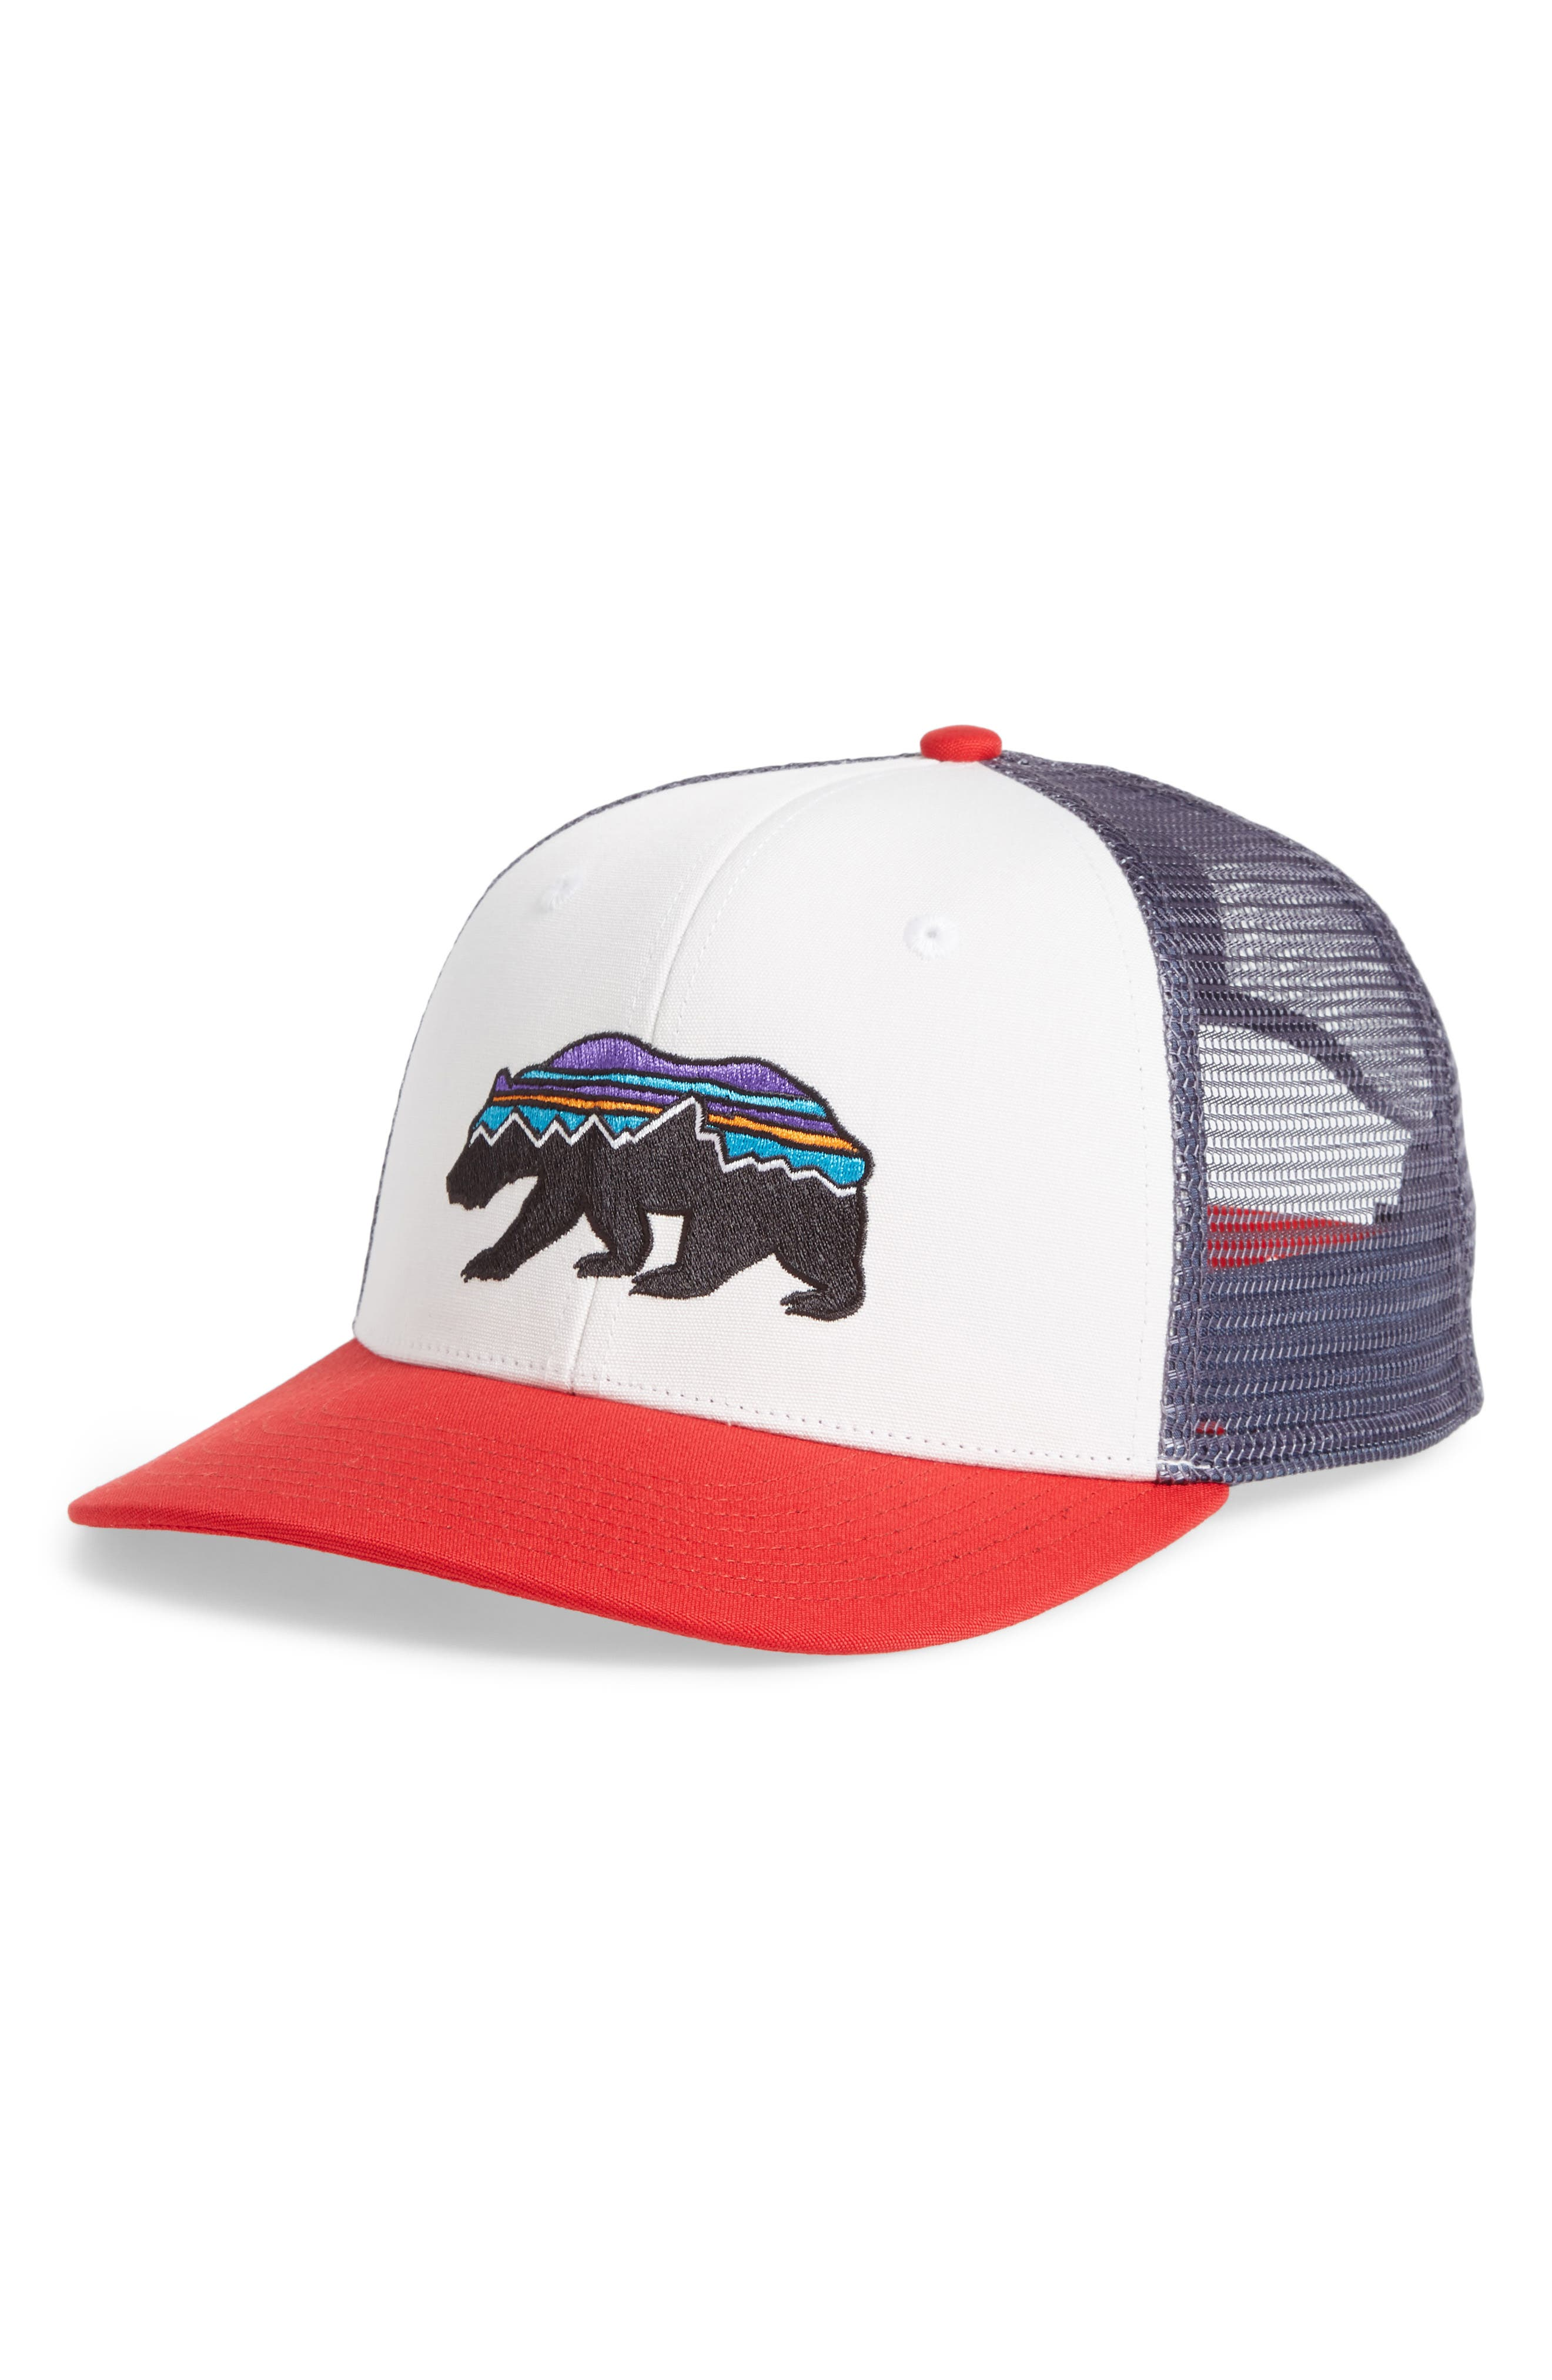 Alternate Image 1 Selected - Patagonia Fitz Roy Bear Trucker Cap